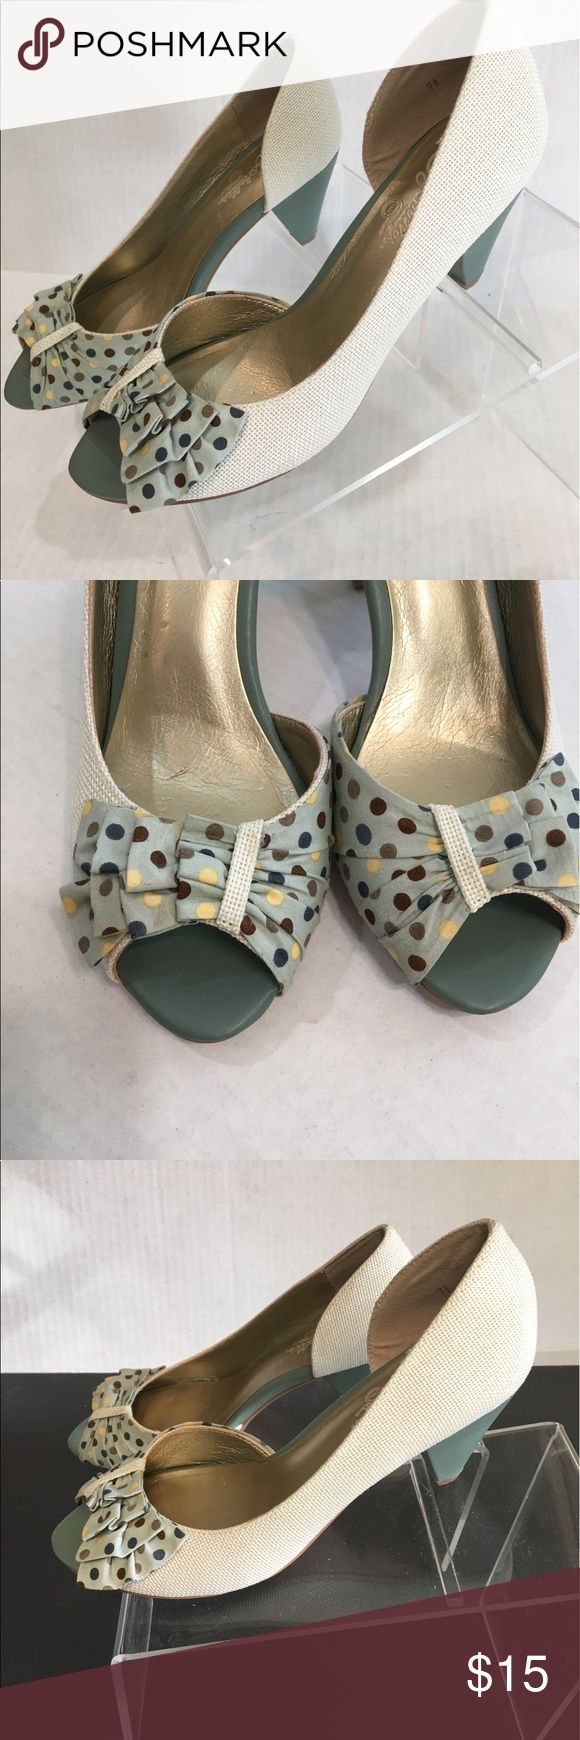 """Seychelles Polka Dot Heels These shoes could not be any cuter!  Cream colored fabric shoes with aqua heels and polka dot upper. Top is pale aqua ruffle with brown, taupe, teal, and yellow polka dots. Shoes are in excellent condition with no visible marks--very clean. Stacked cone-shaped heel is approx 3"""". Seychelles Shoes Heels"""